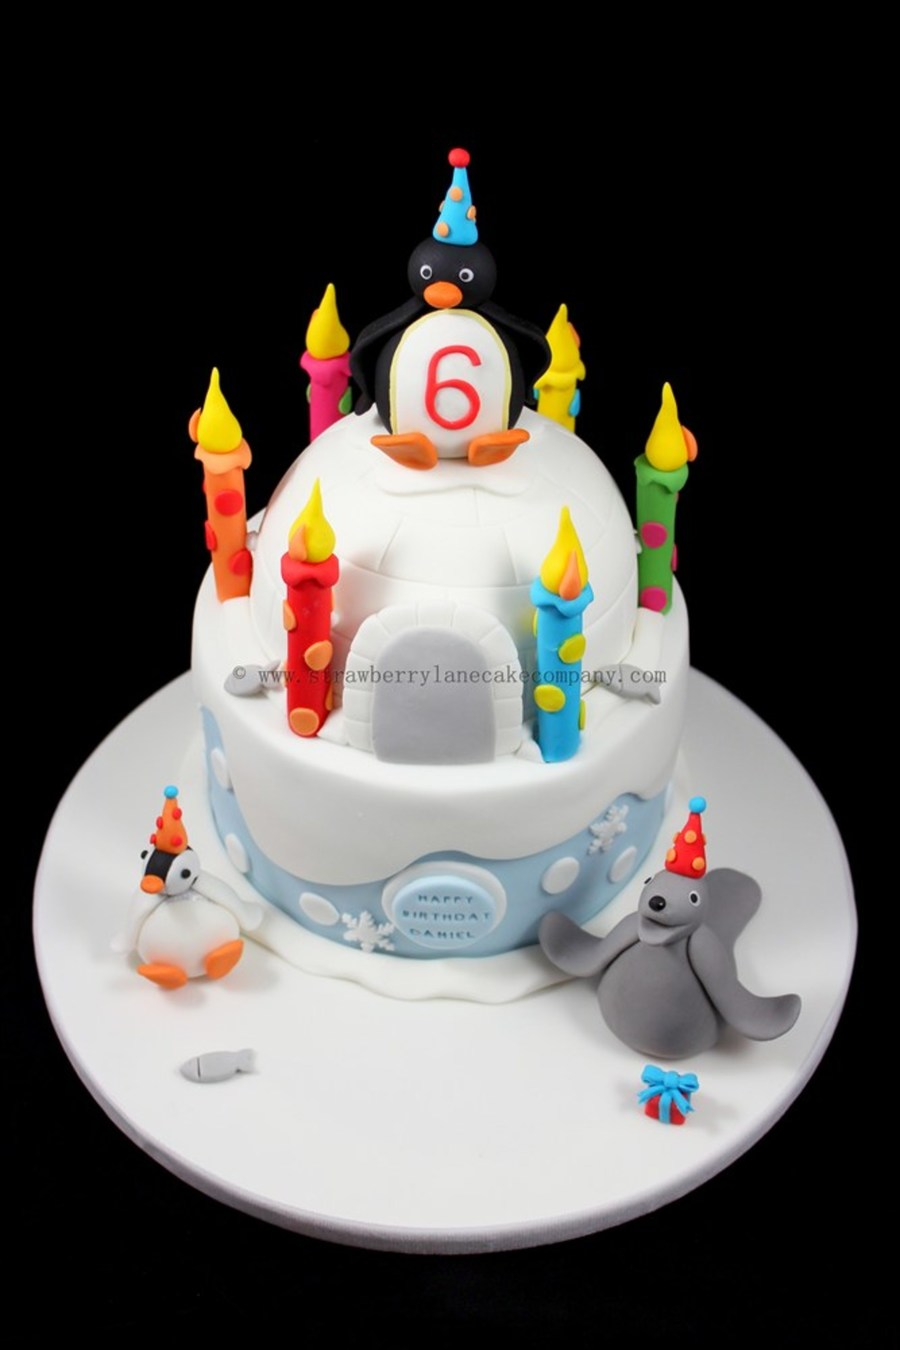 Pingu Robby And Pinga Cake Made For A Littel Boy Called Daniel The Whole Cake Is Edible And Made Of Fondant A Bit Of Flower Paste Is Ad on Cake Central